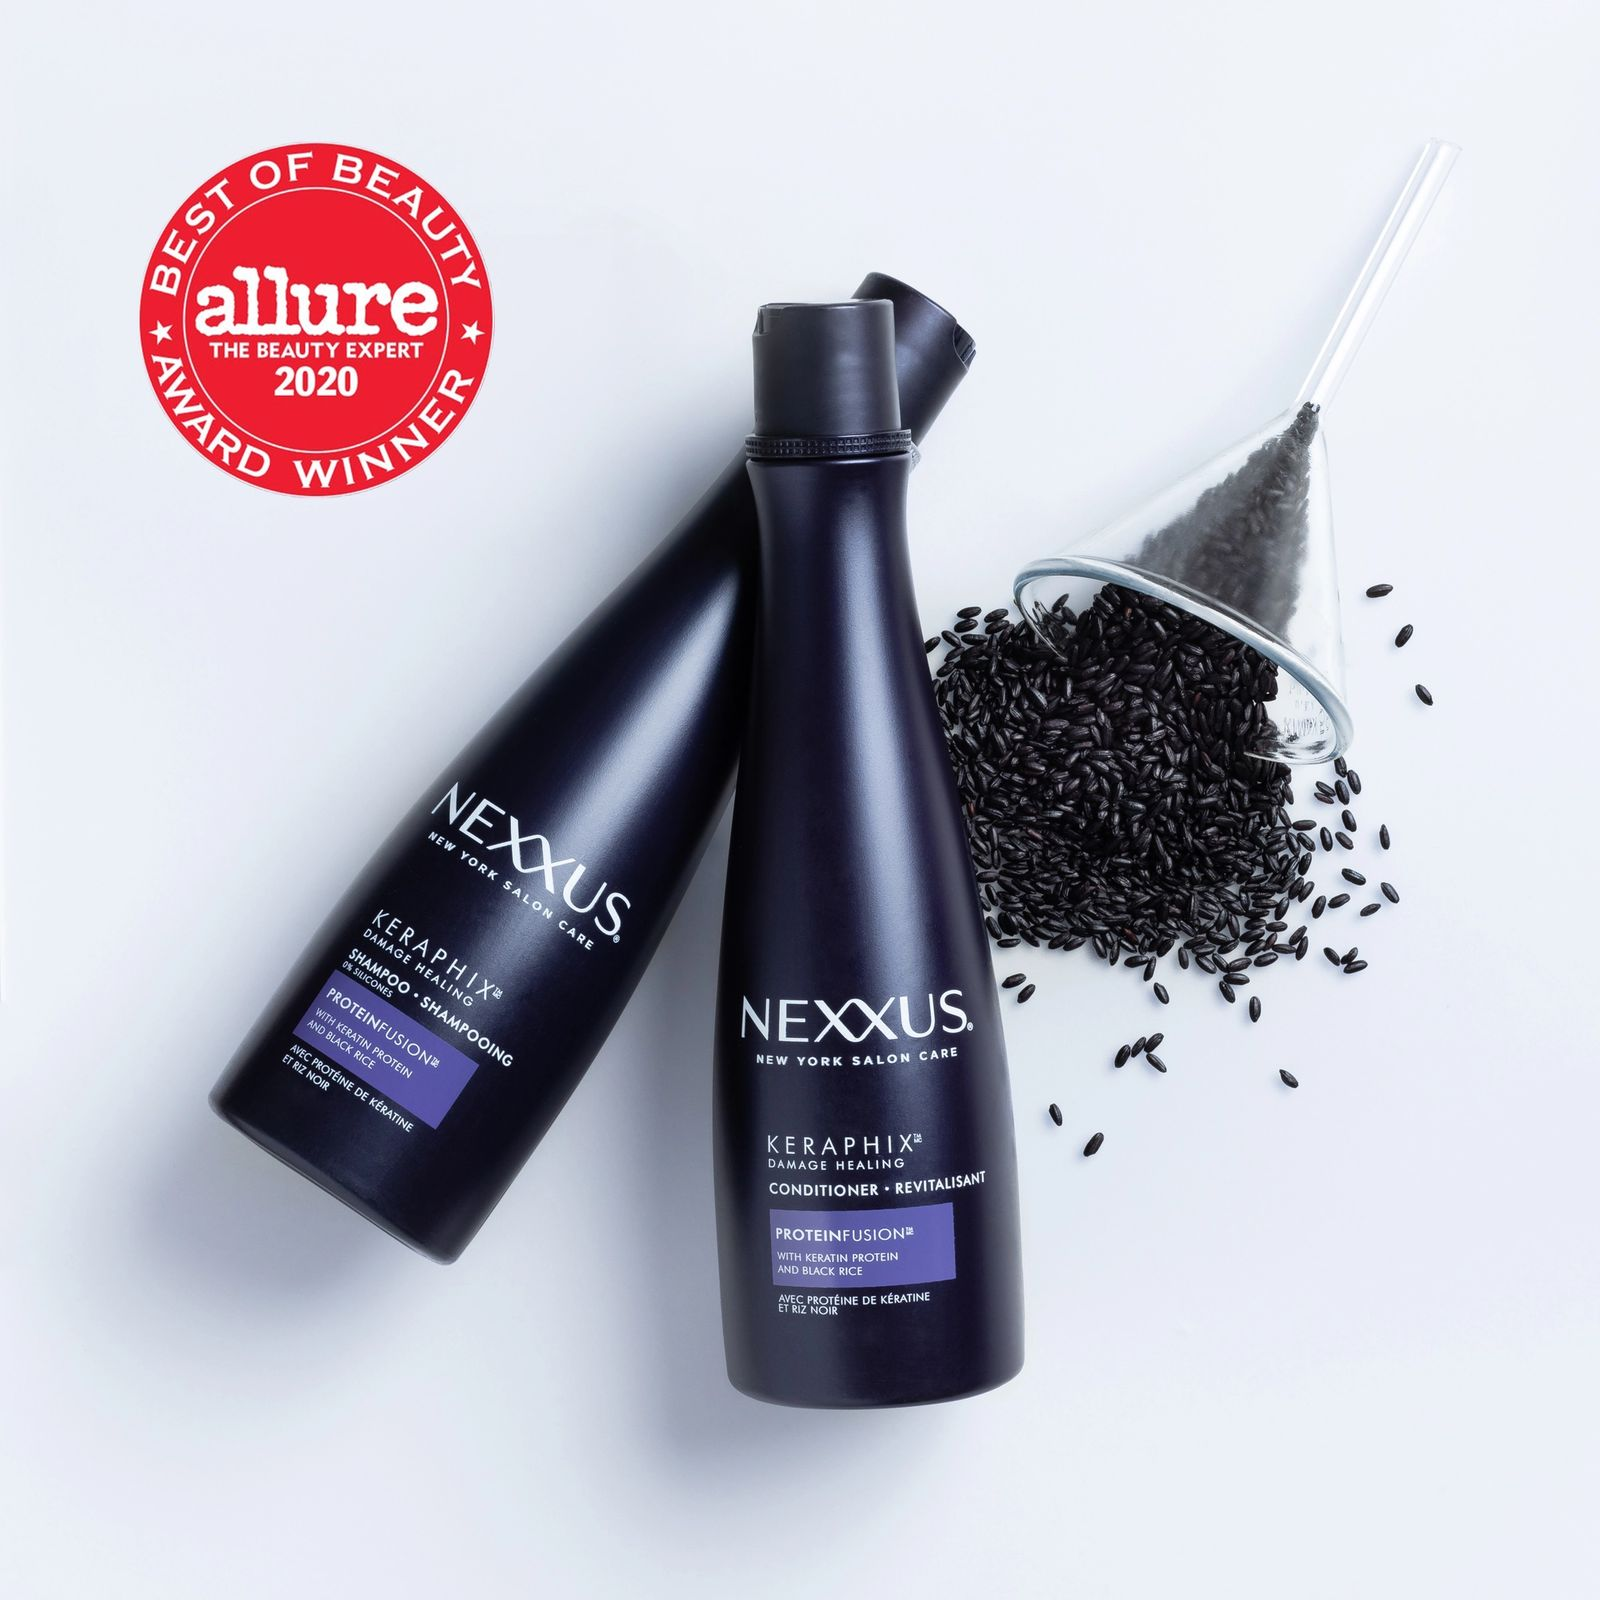 2020 Best Hair Care Products For Damaged Hair Repair Nexxus Keraphix Shampoo Conditioner Nexxus Us